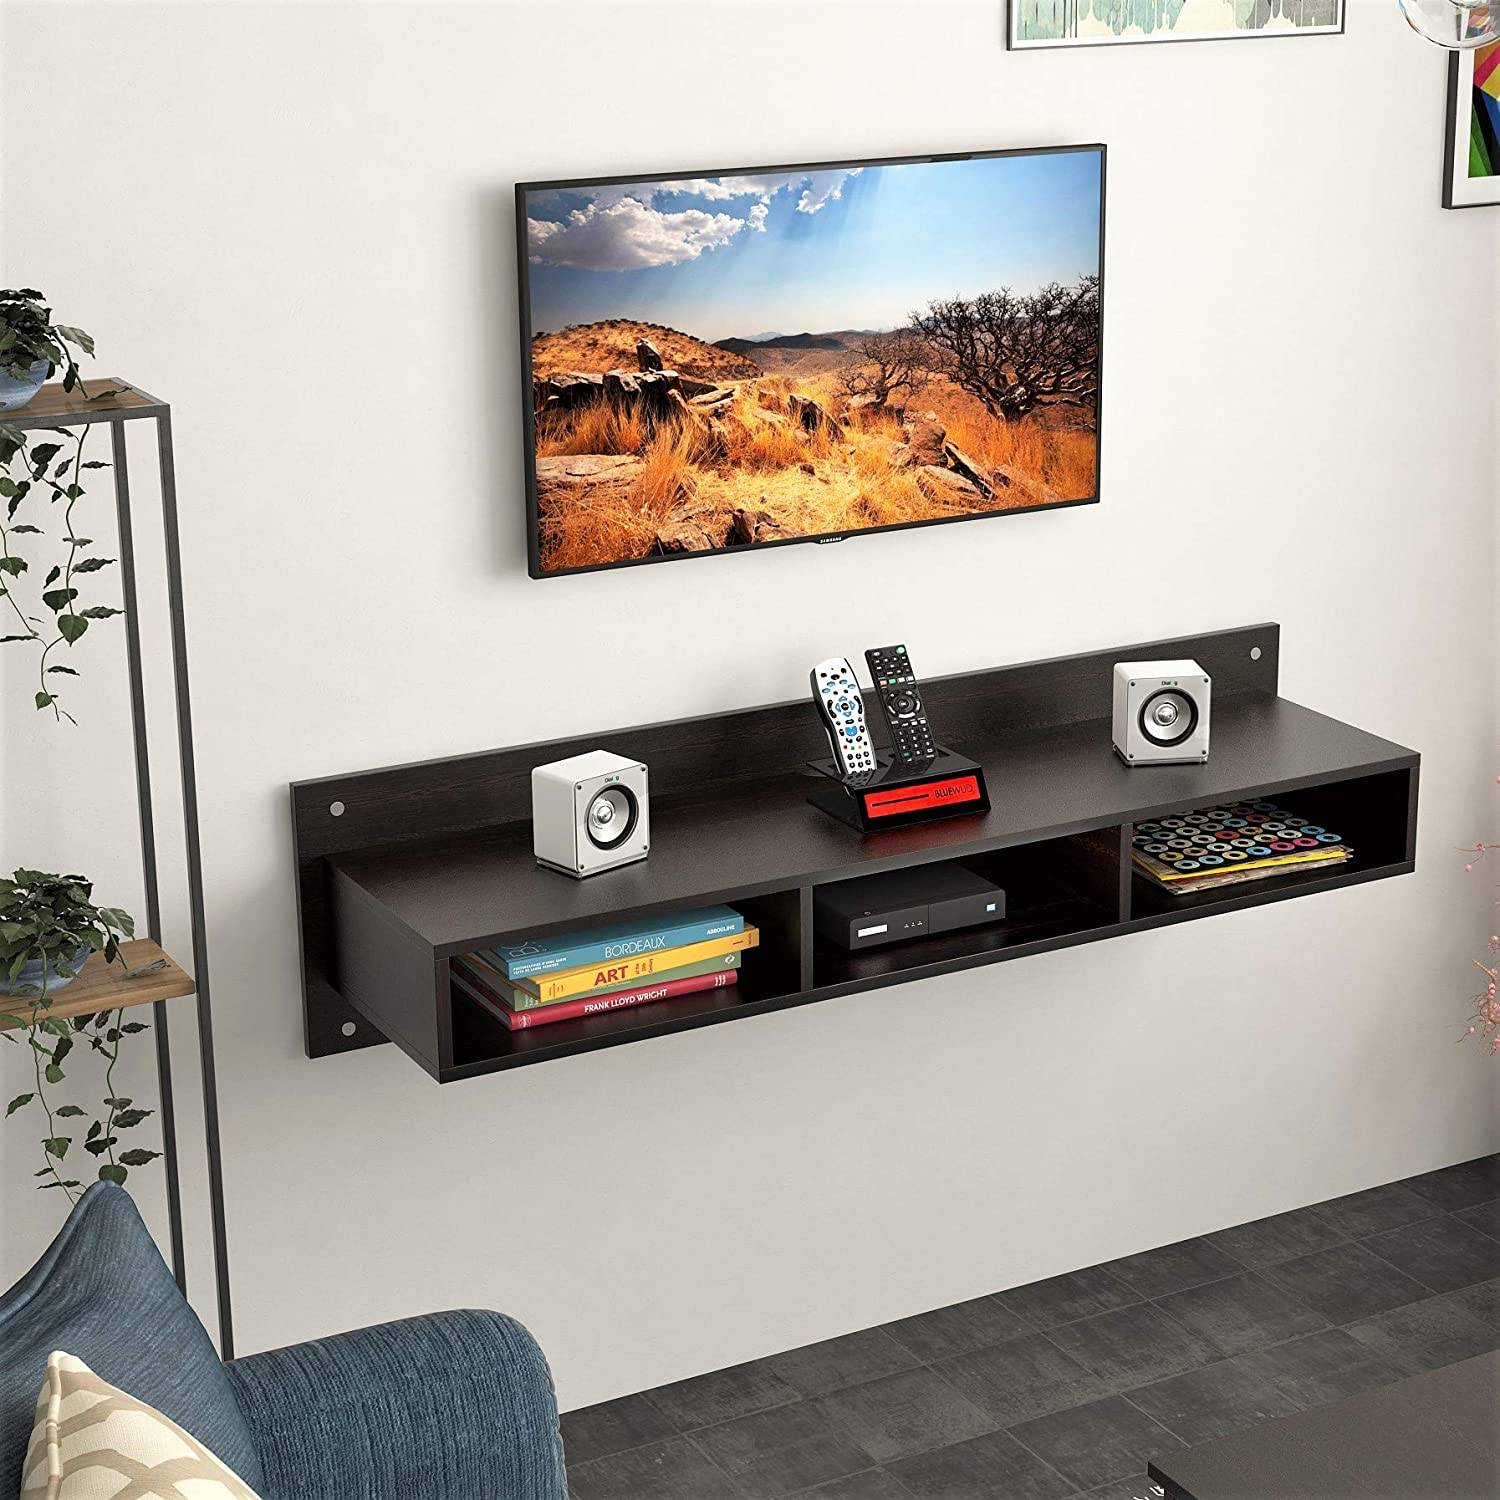 Best Wall Tv Units Business Insider India